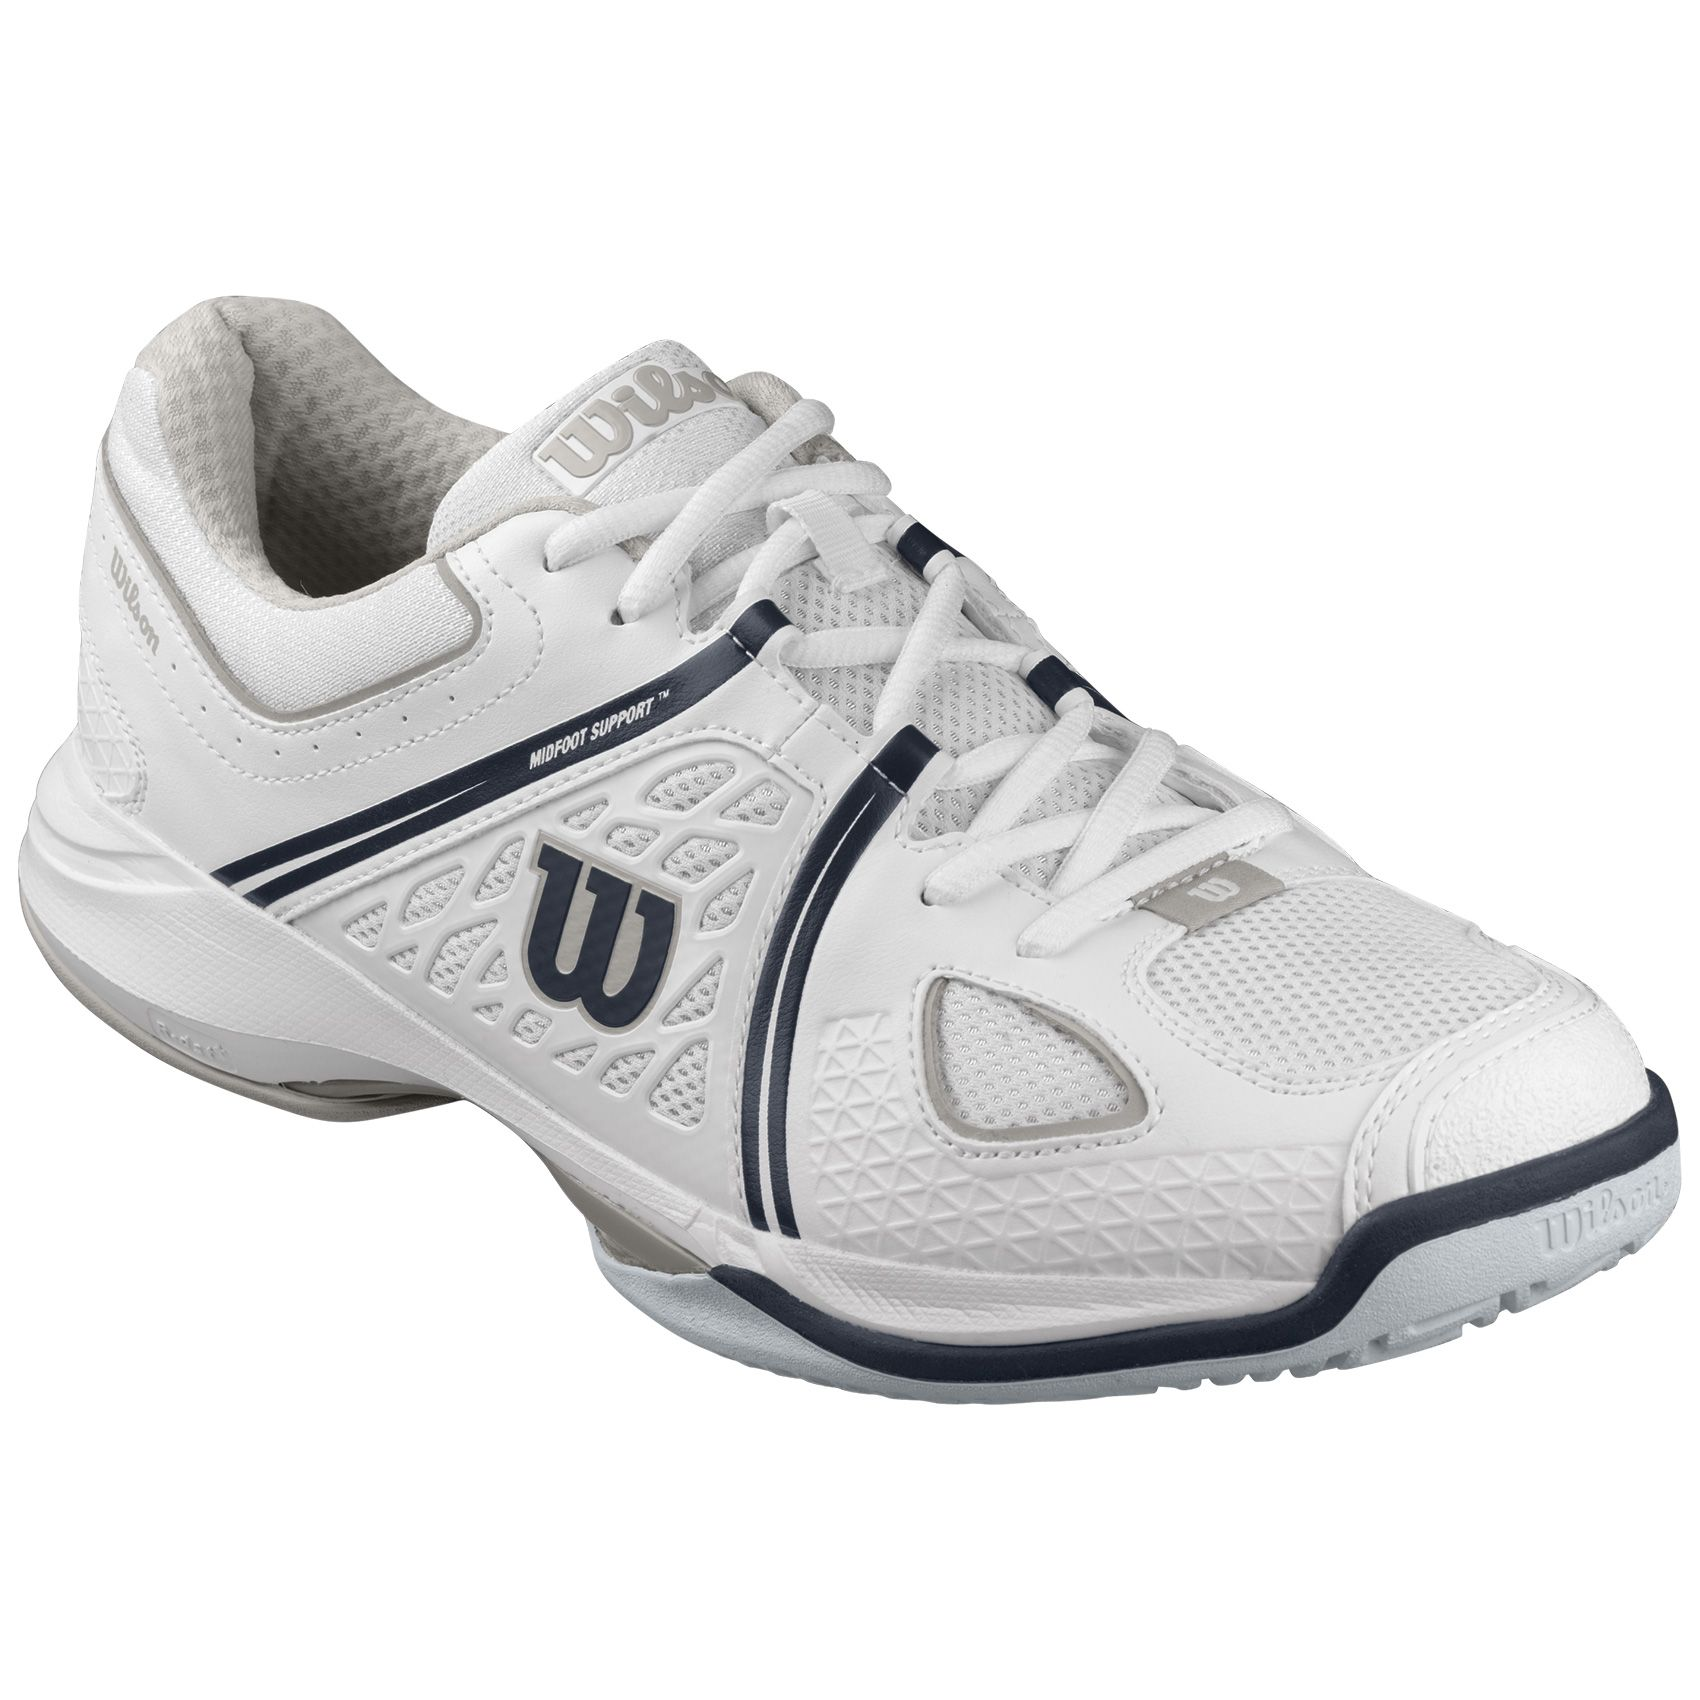 Mens Tennis Shoes With Best Arch Support